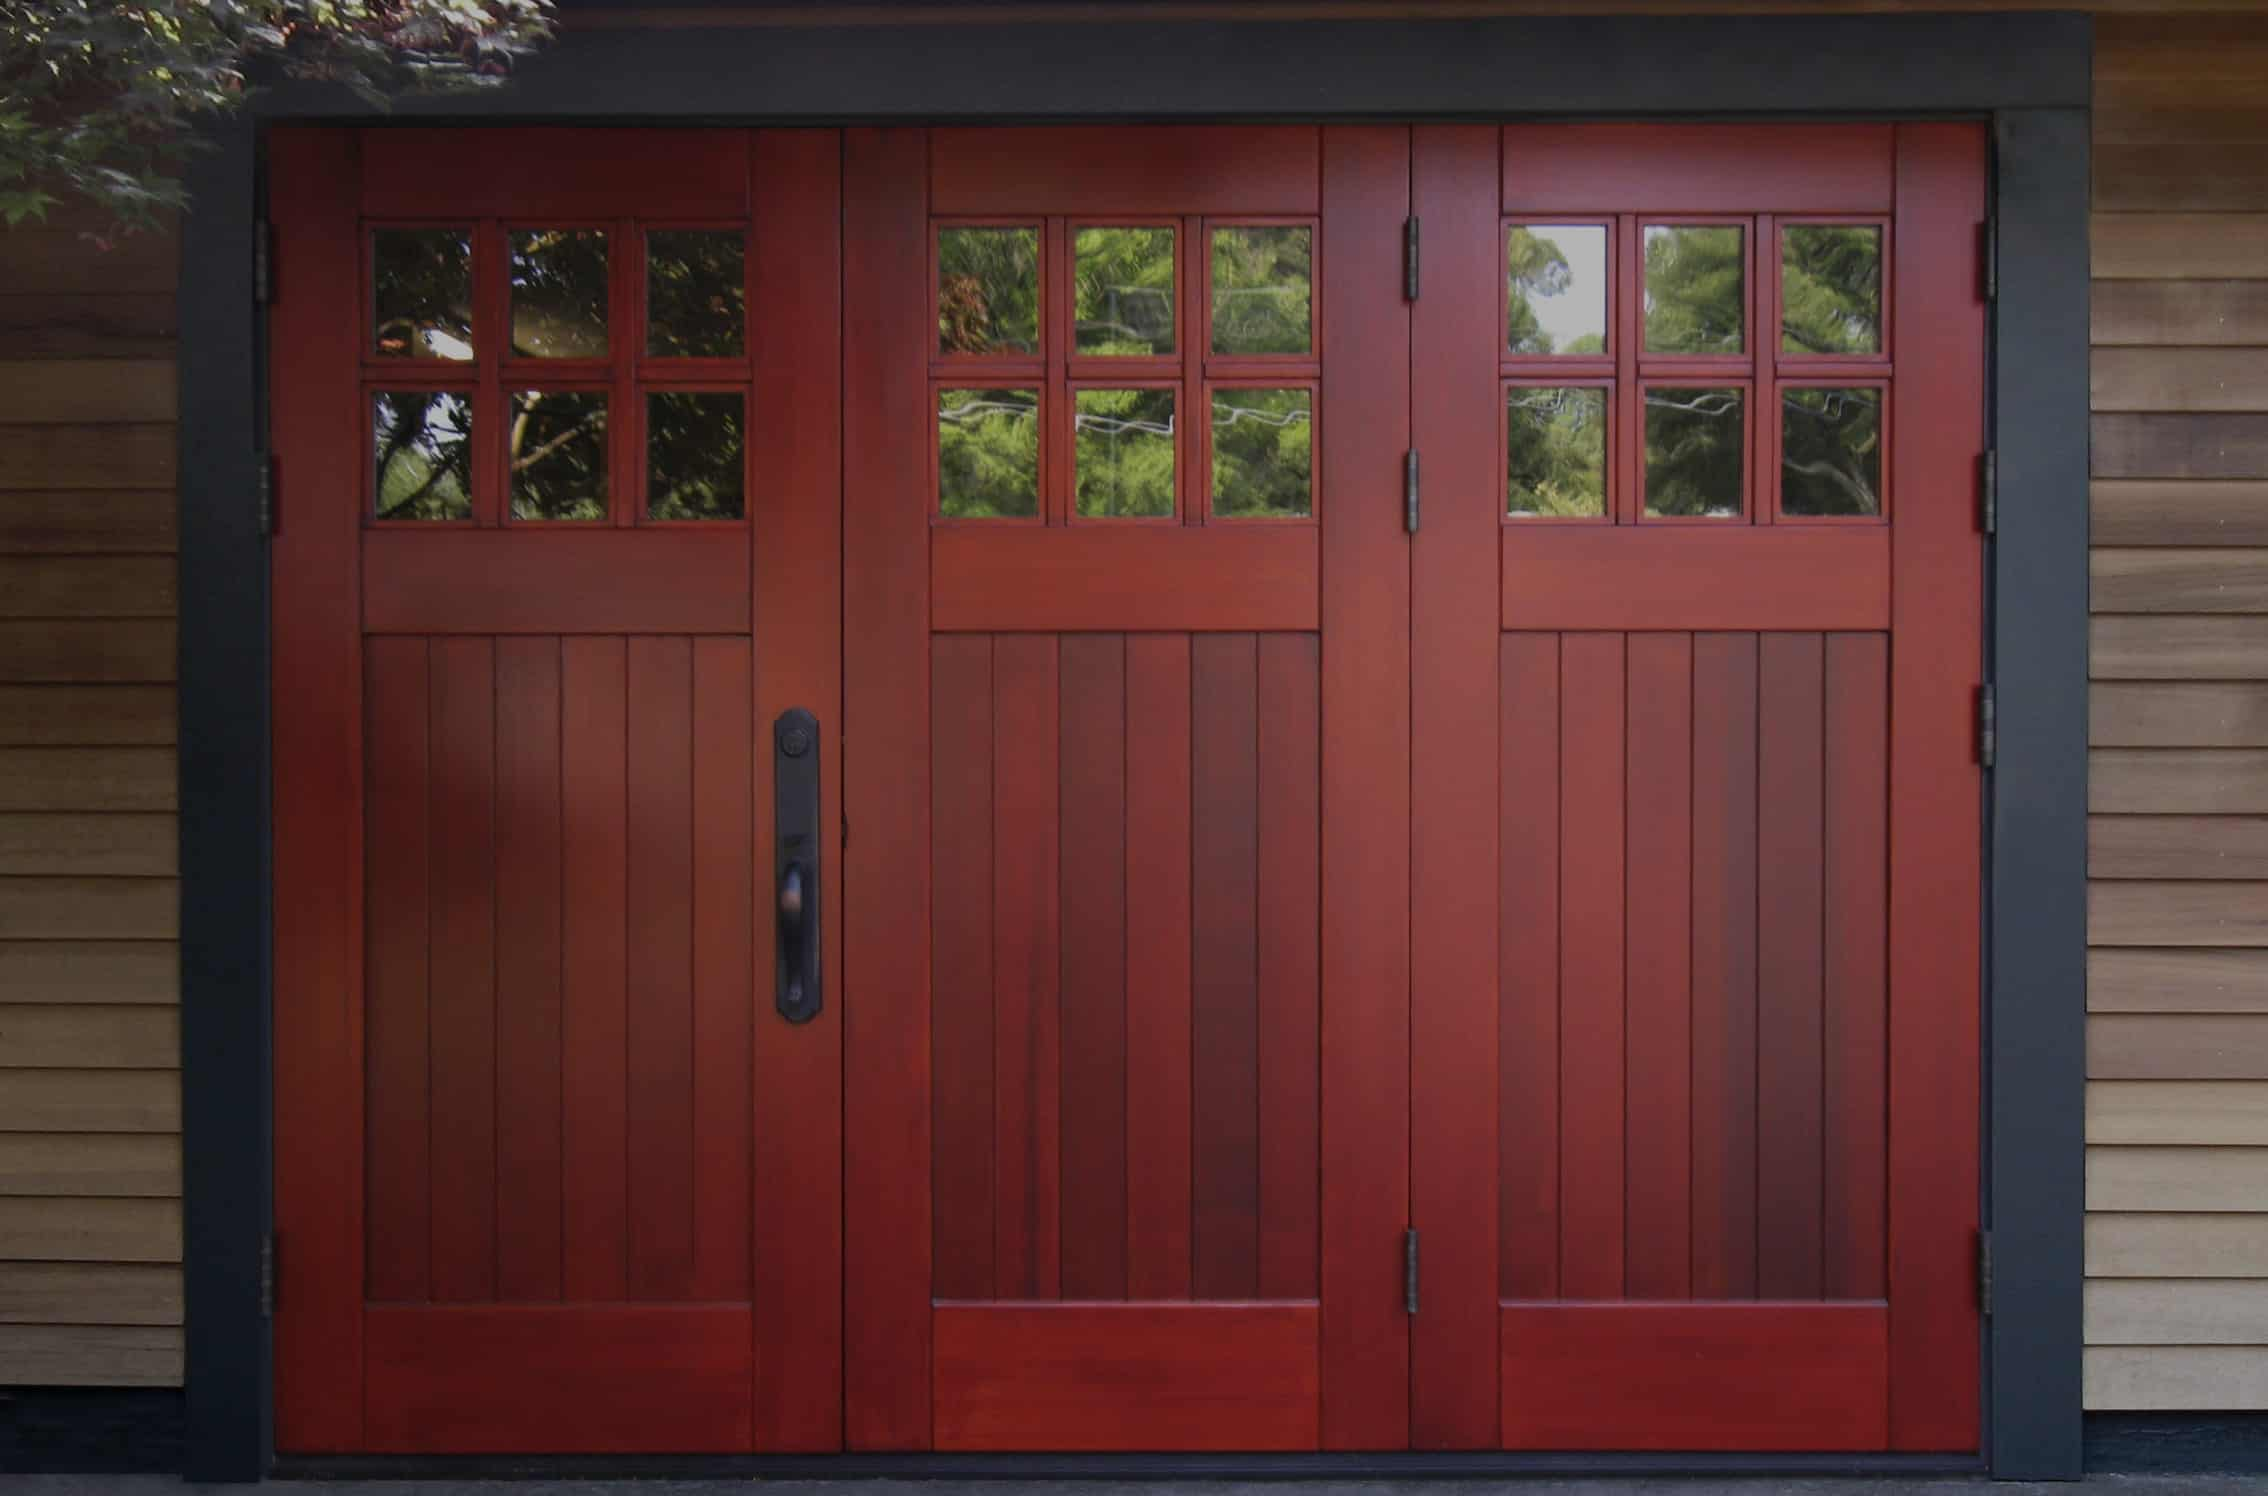 3-panel wood folding doors for the garage